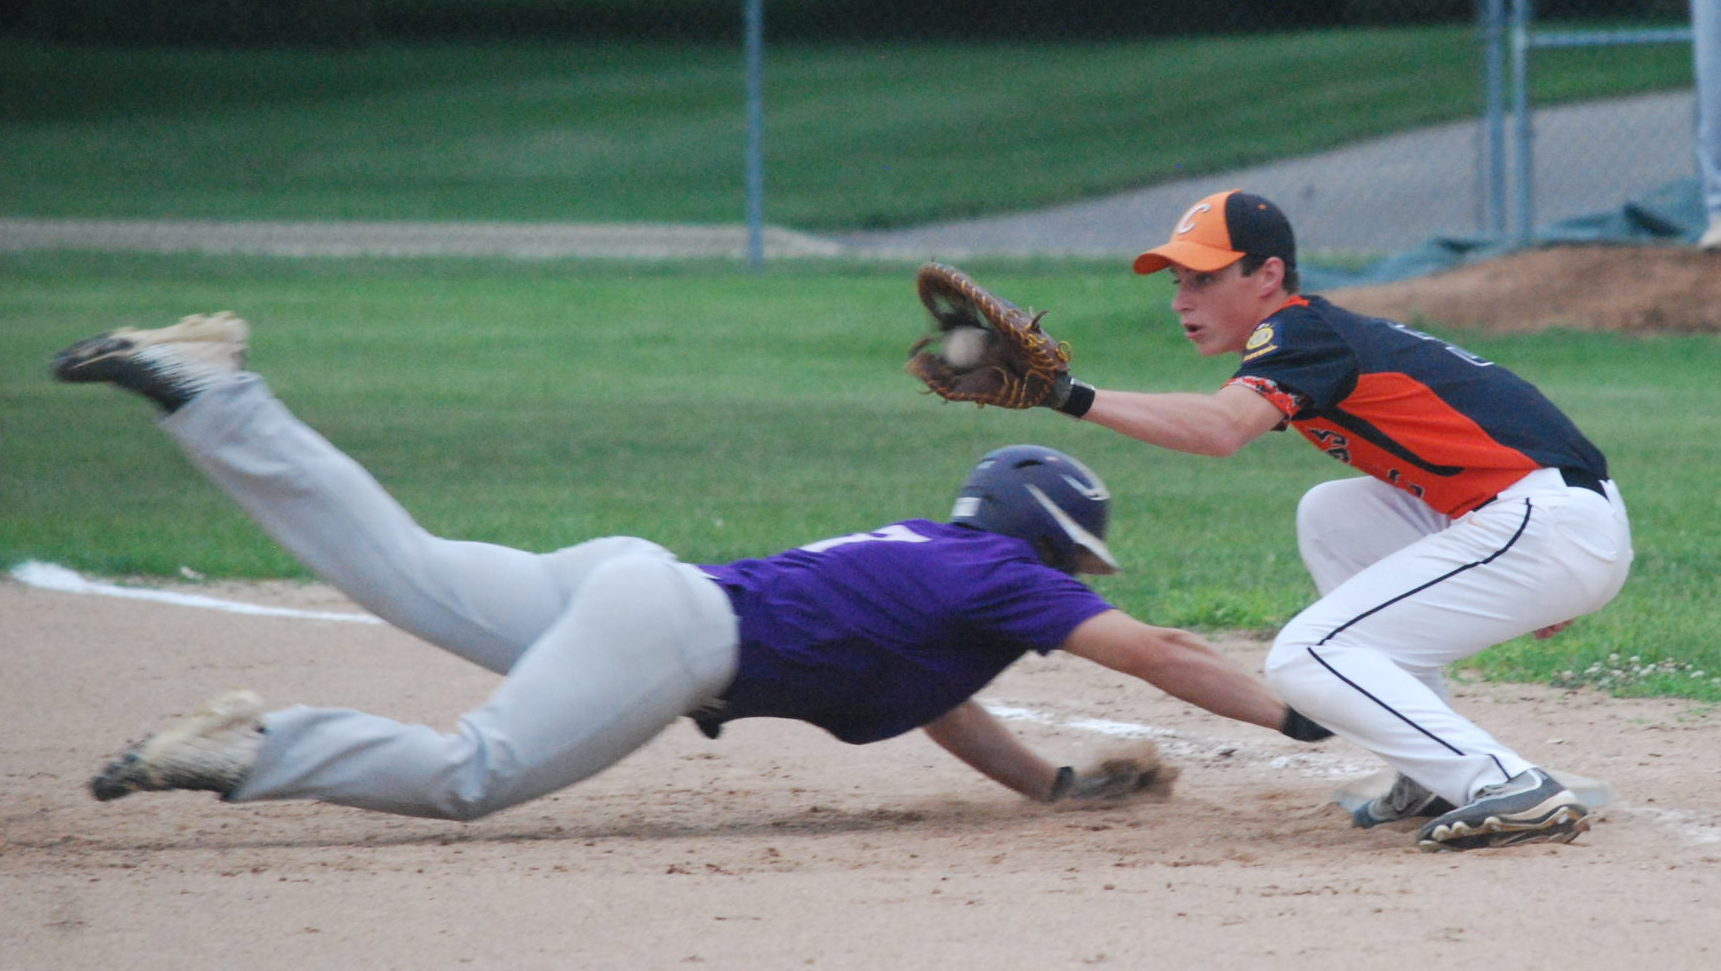 Legion Baseball: Clintonville shut down by Niagara in regional opener